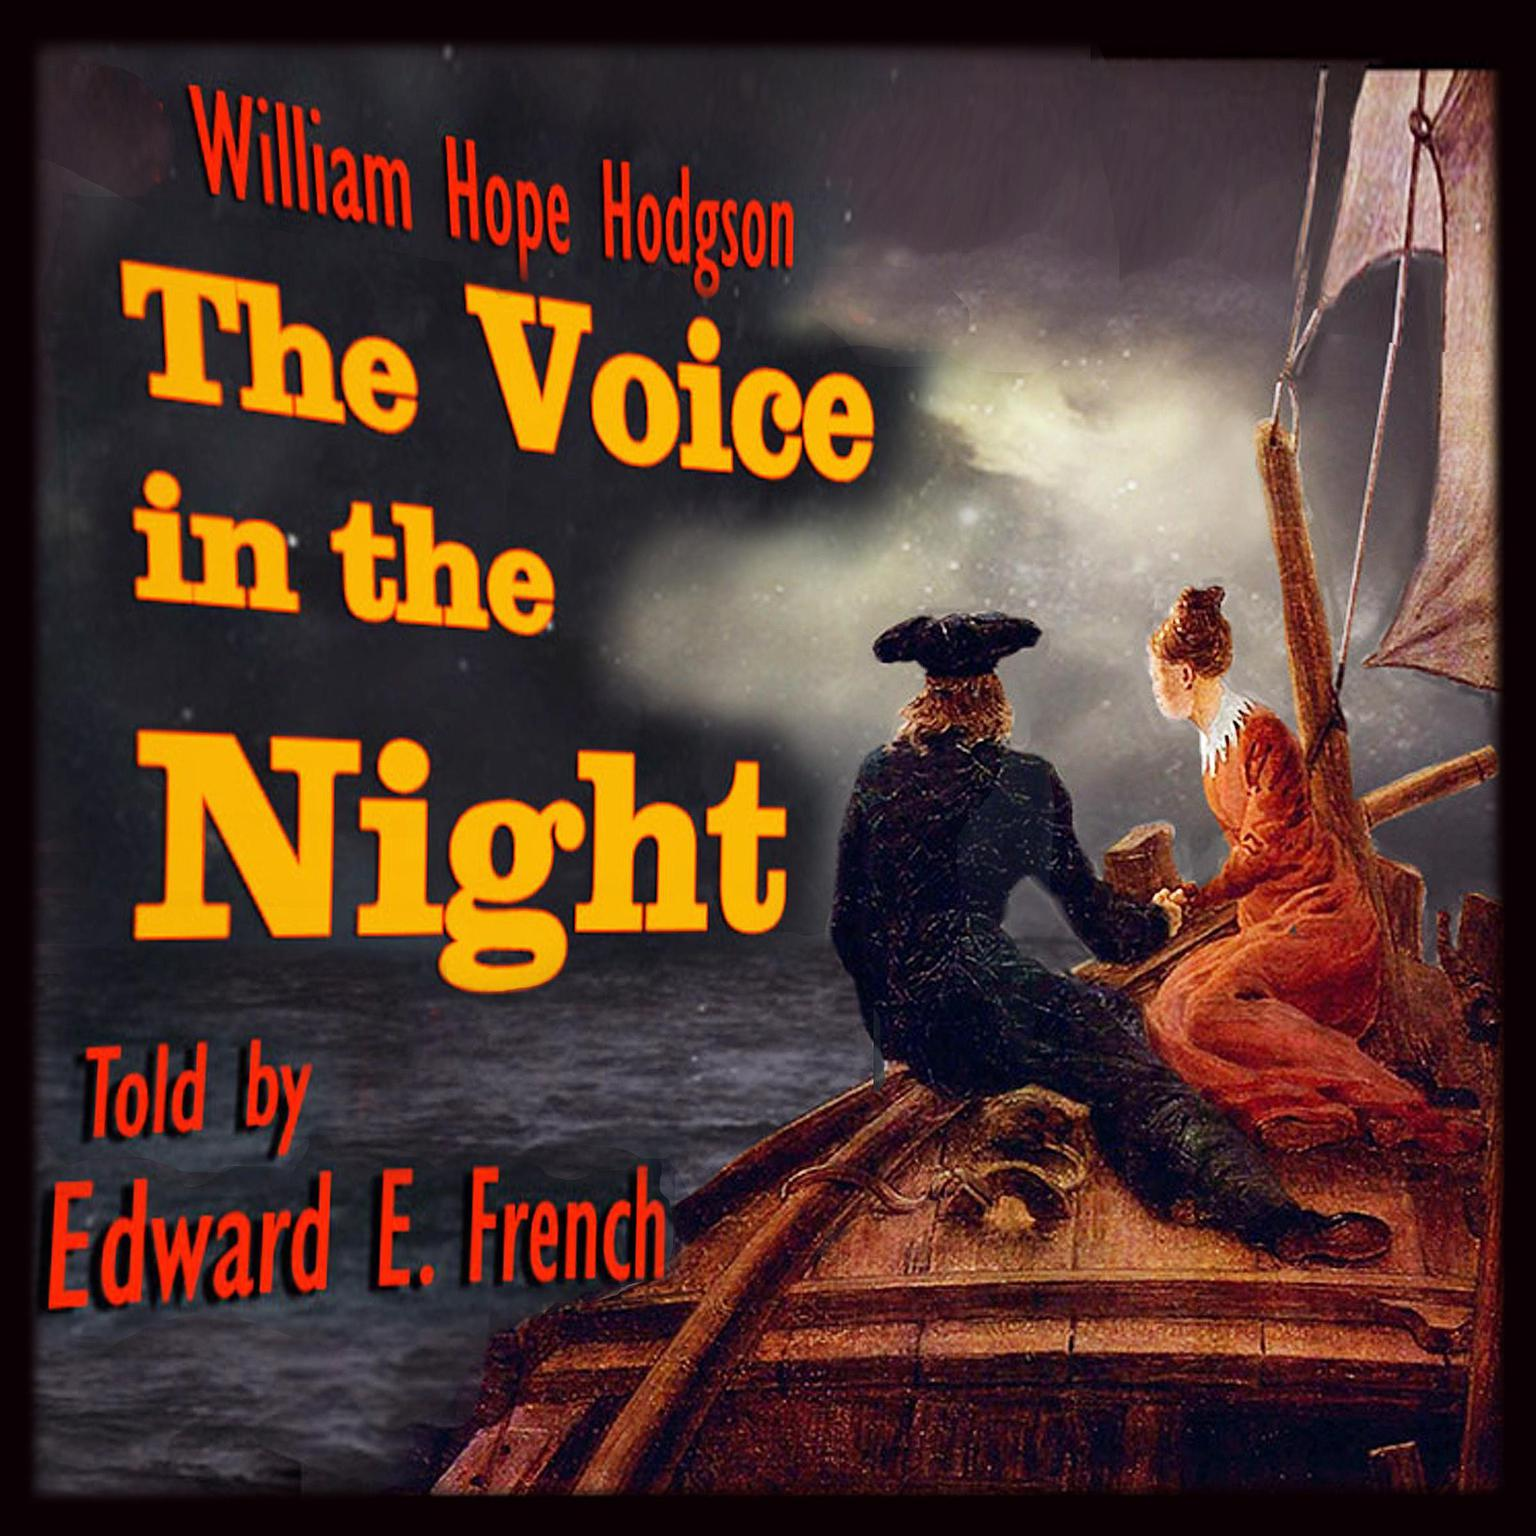 The Voice in the night Audiobook, by William Hope Hodgson